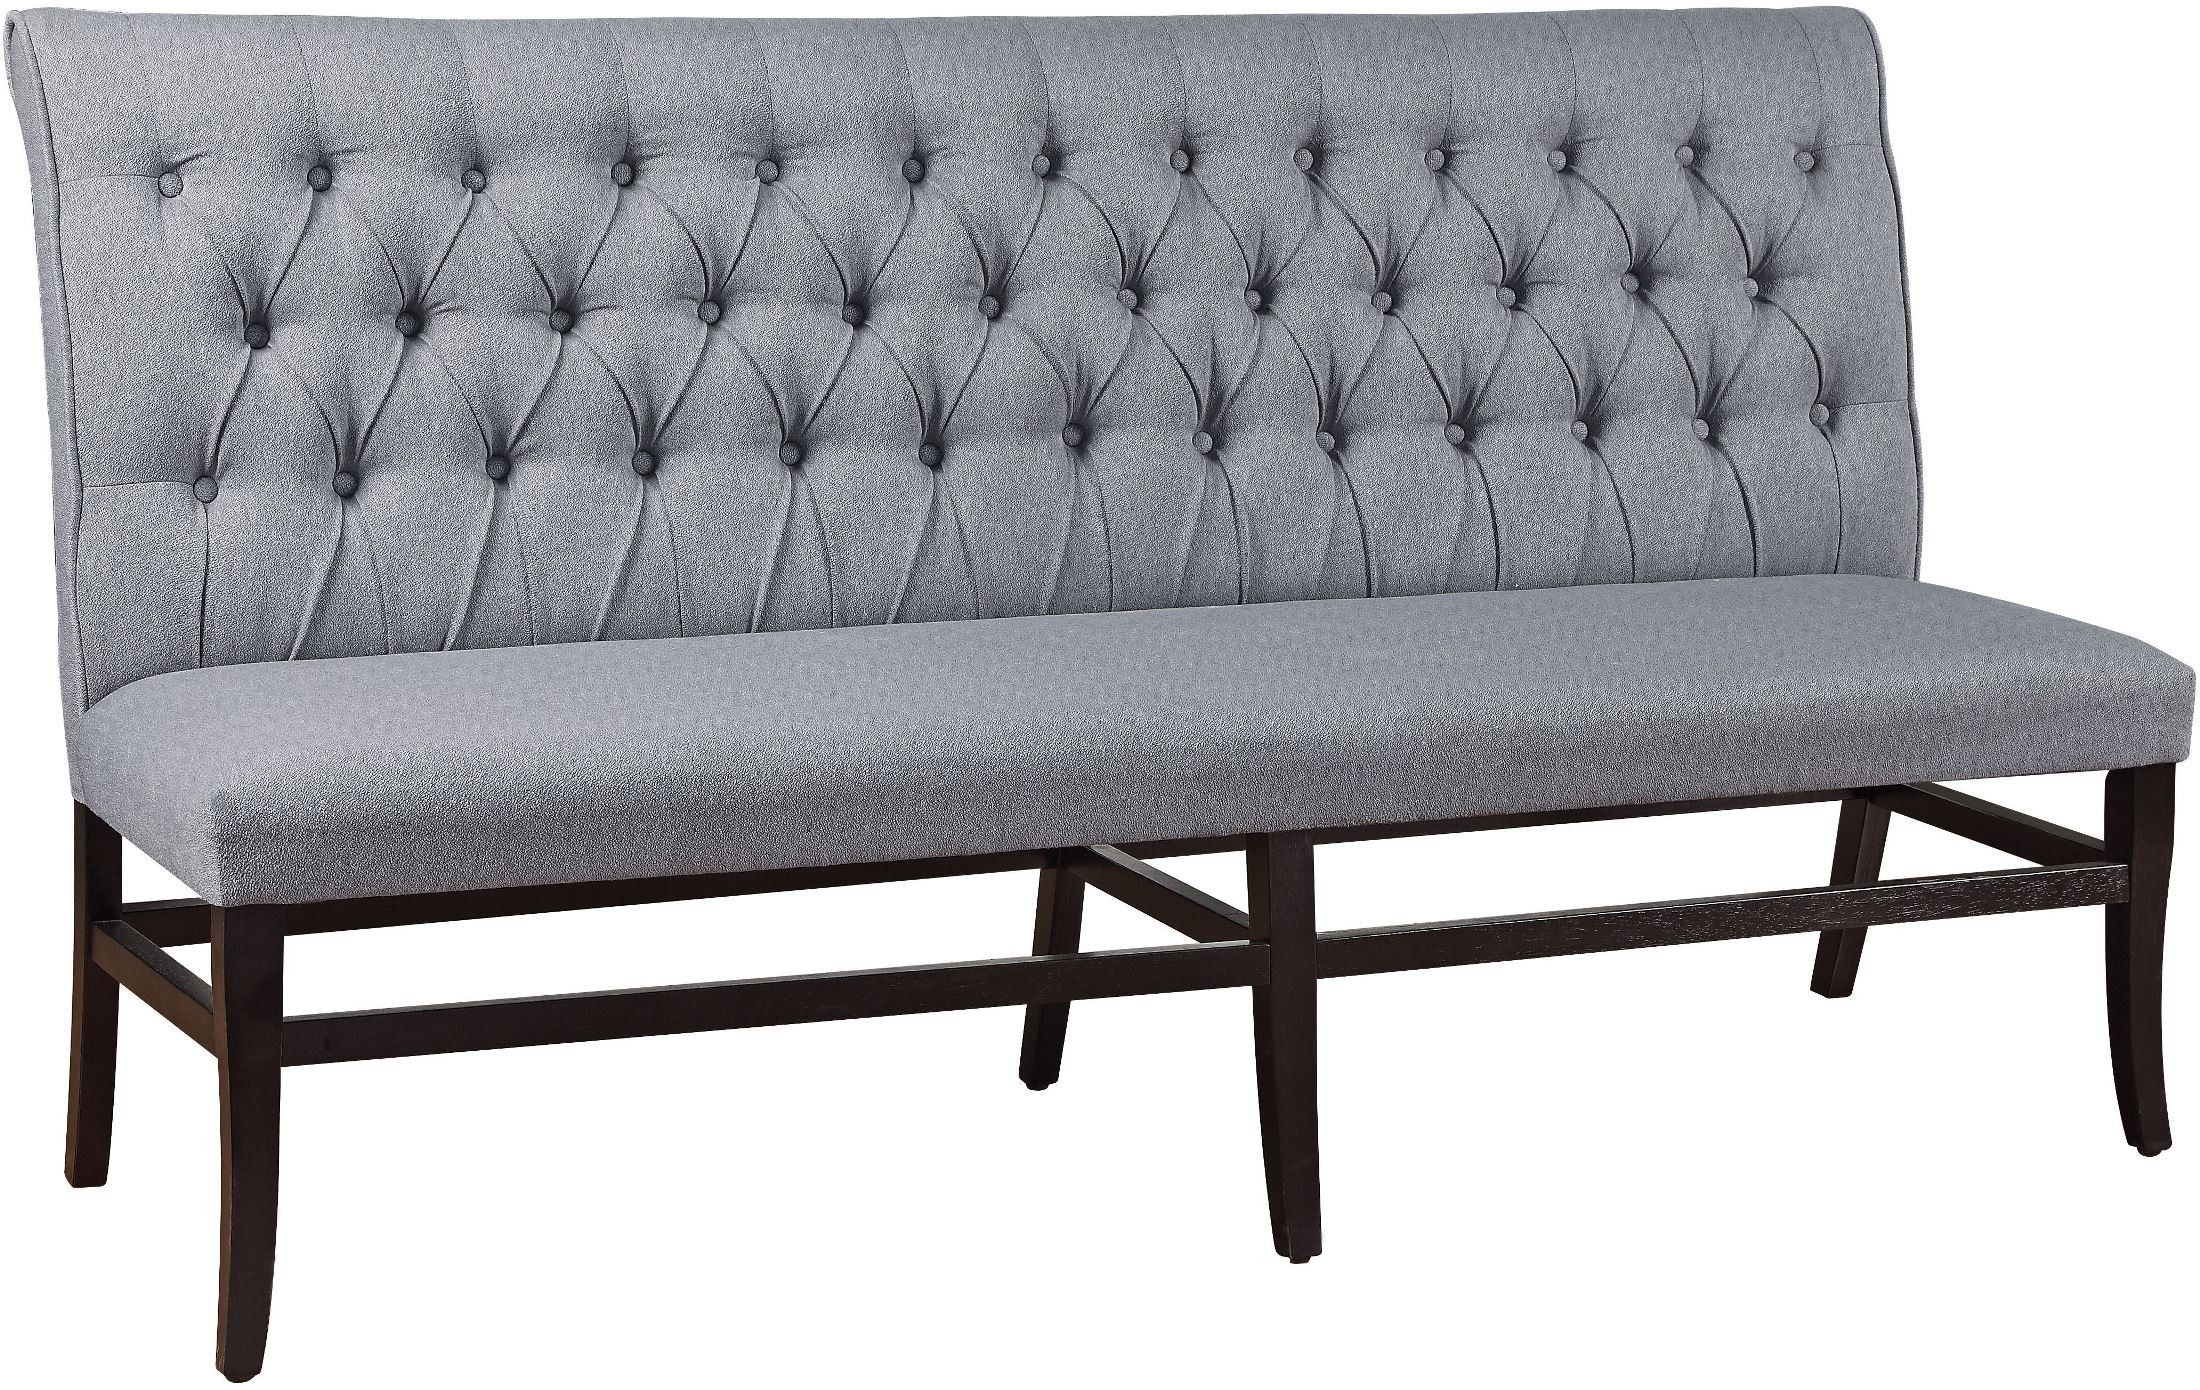 Regal Vintage French Upholstered Fabric Bench Blackwood Black Dining Bench From Coast To Coast Coleman